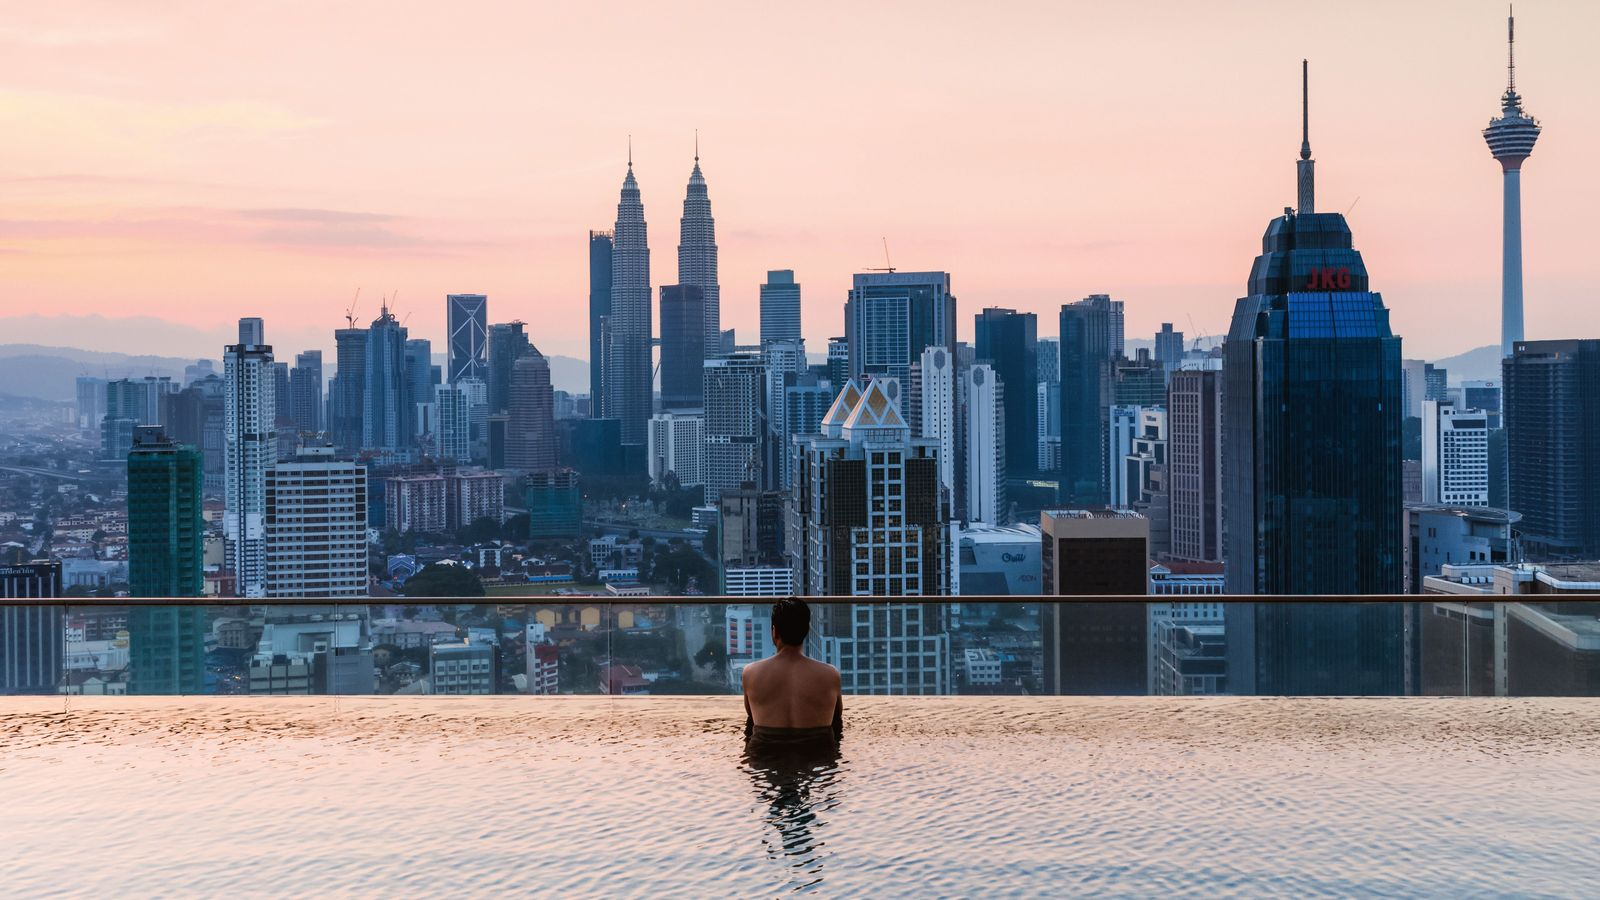 The view from an infinitypool on a terrance in Kuala Lumpur